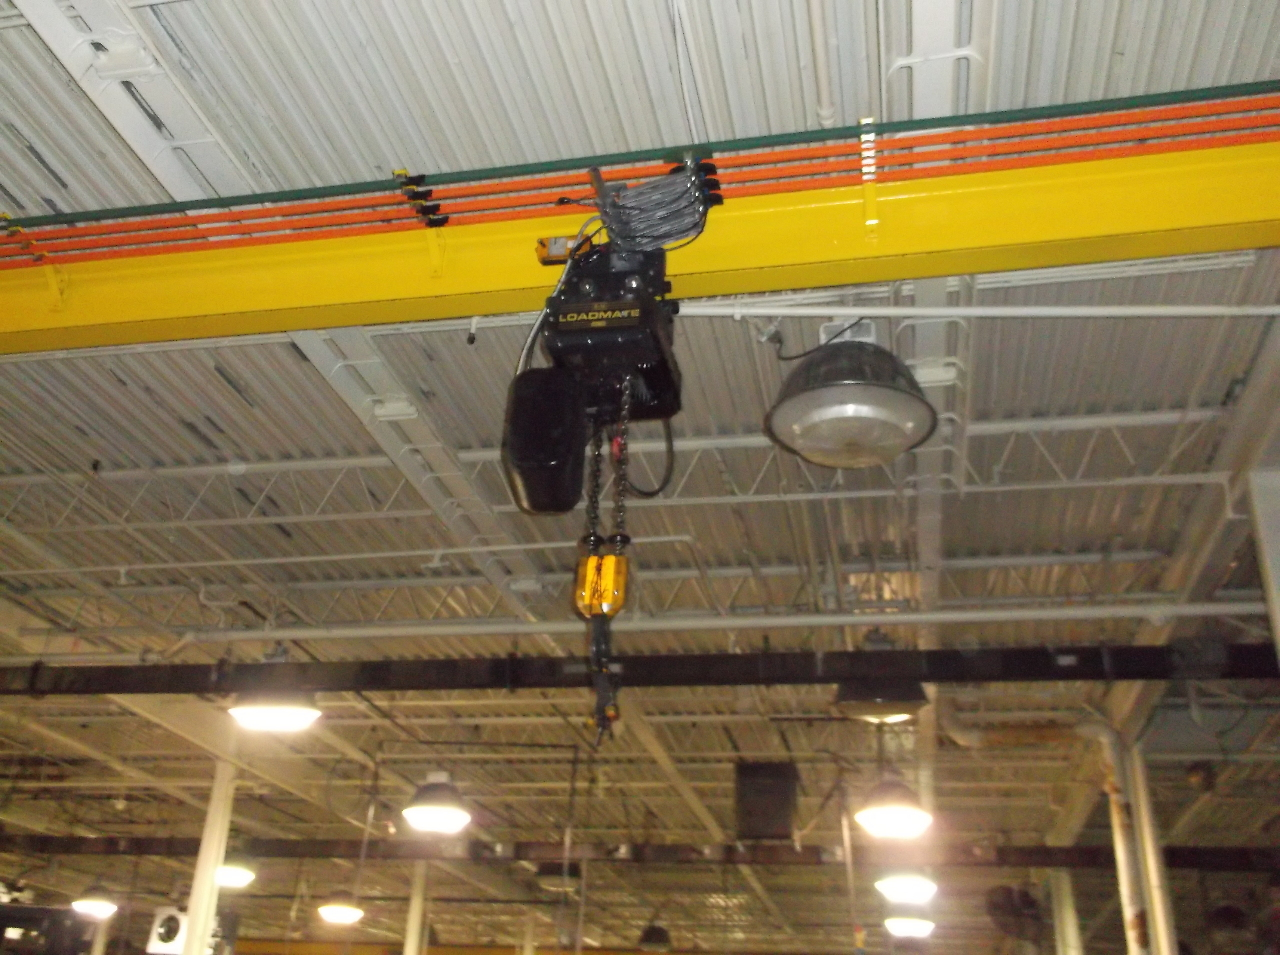 R m loadmate lm16 3 ton electric chain hoist and for 2 ton hoist with motorized trolley